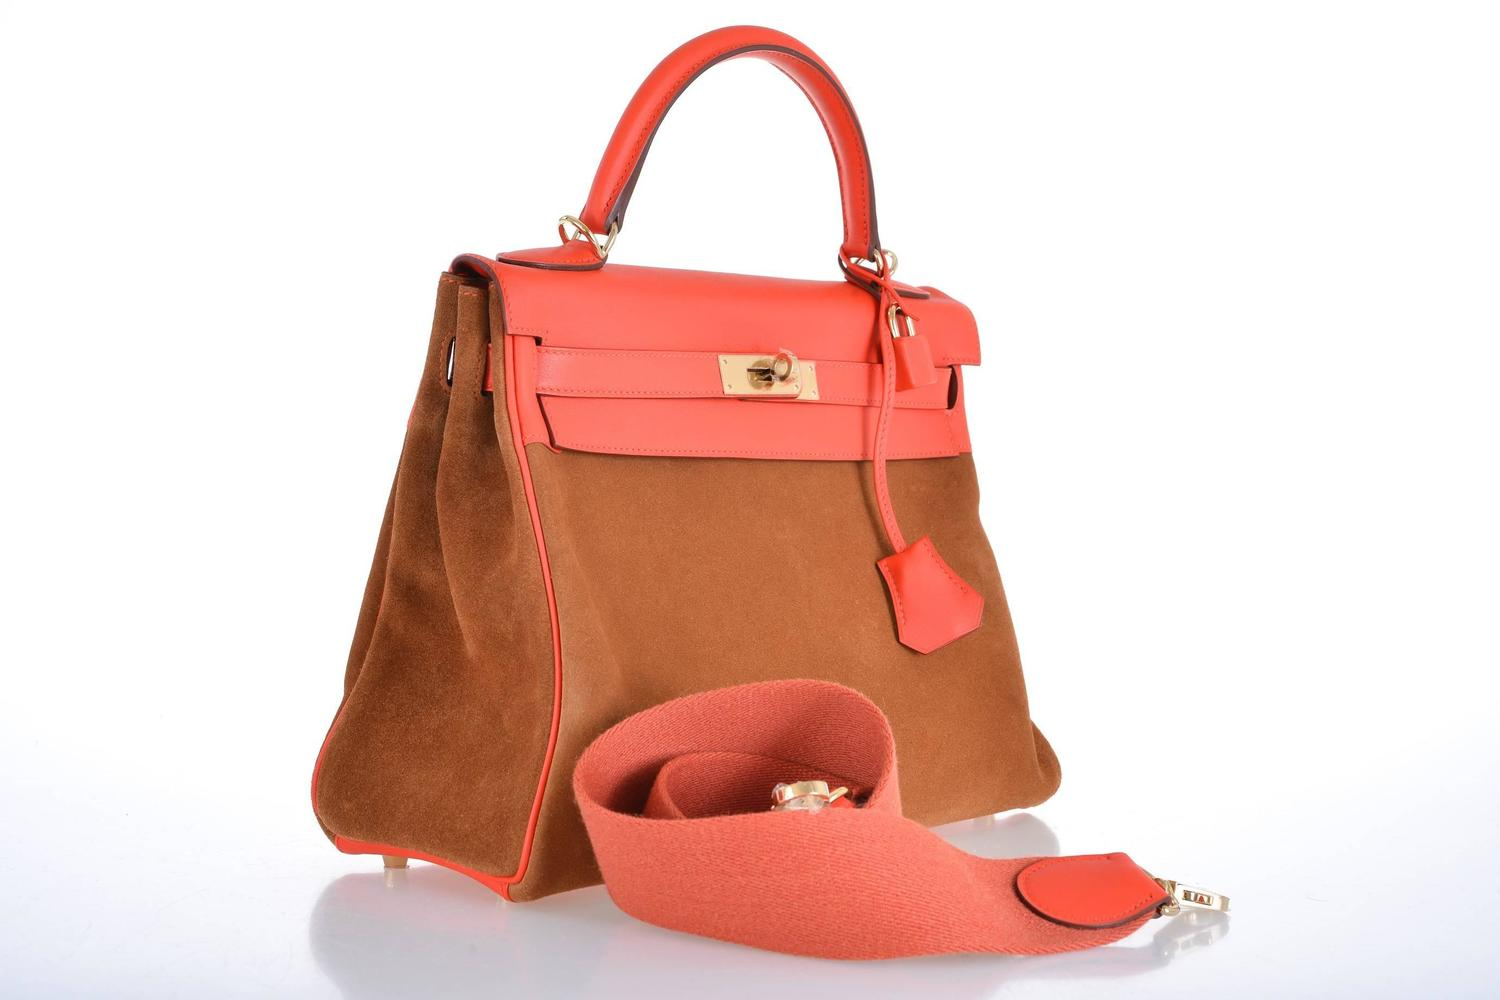 hermes bags replica - HERMES KELLY BAG 32cm GRIZZLY SUEDE W CAPUCINE GOLD PERMABRASS ...